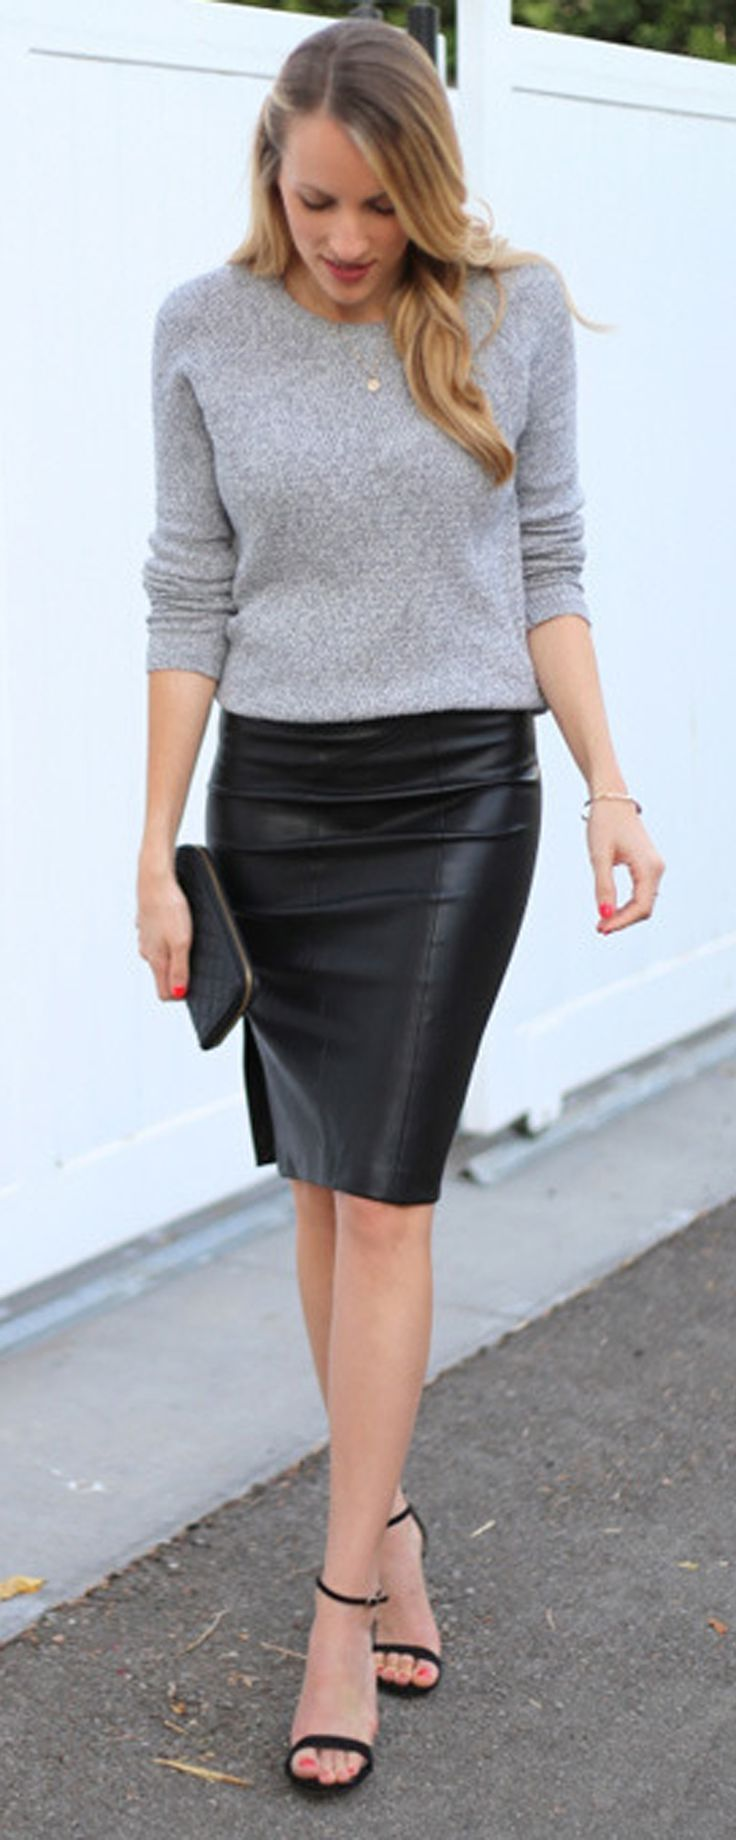 2910 best images about Trends - Leather Skirts on Pinterest ...